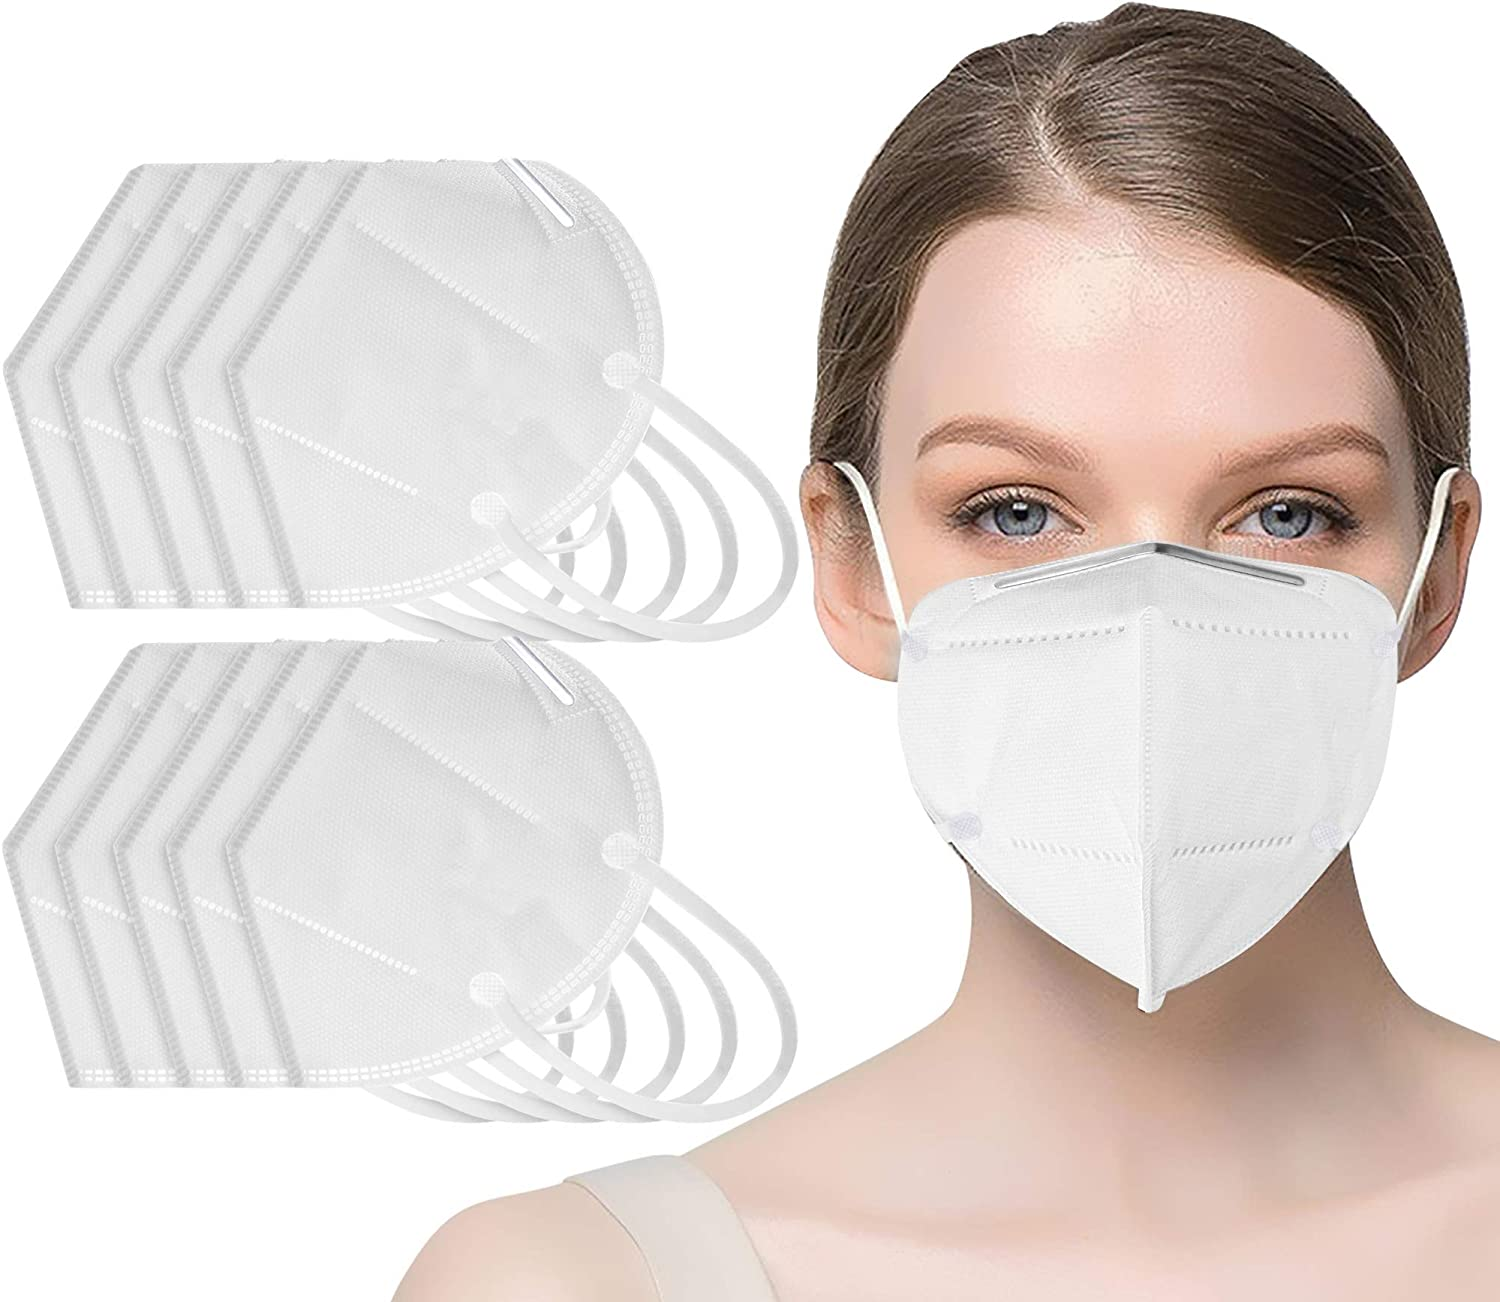 20 pcs Face Mask - 5 Layer Filters - Non Woven Hypoallergenic Protection - Dust, Pollen and Haze Proof - Superior Face Sealing, Comfortable, Breathable with Elastic Ear Loop